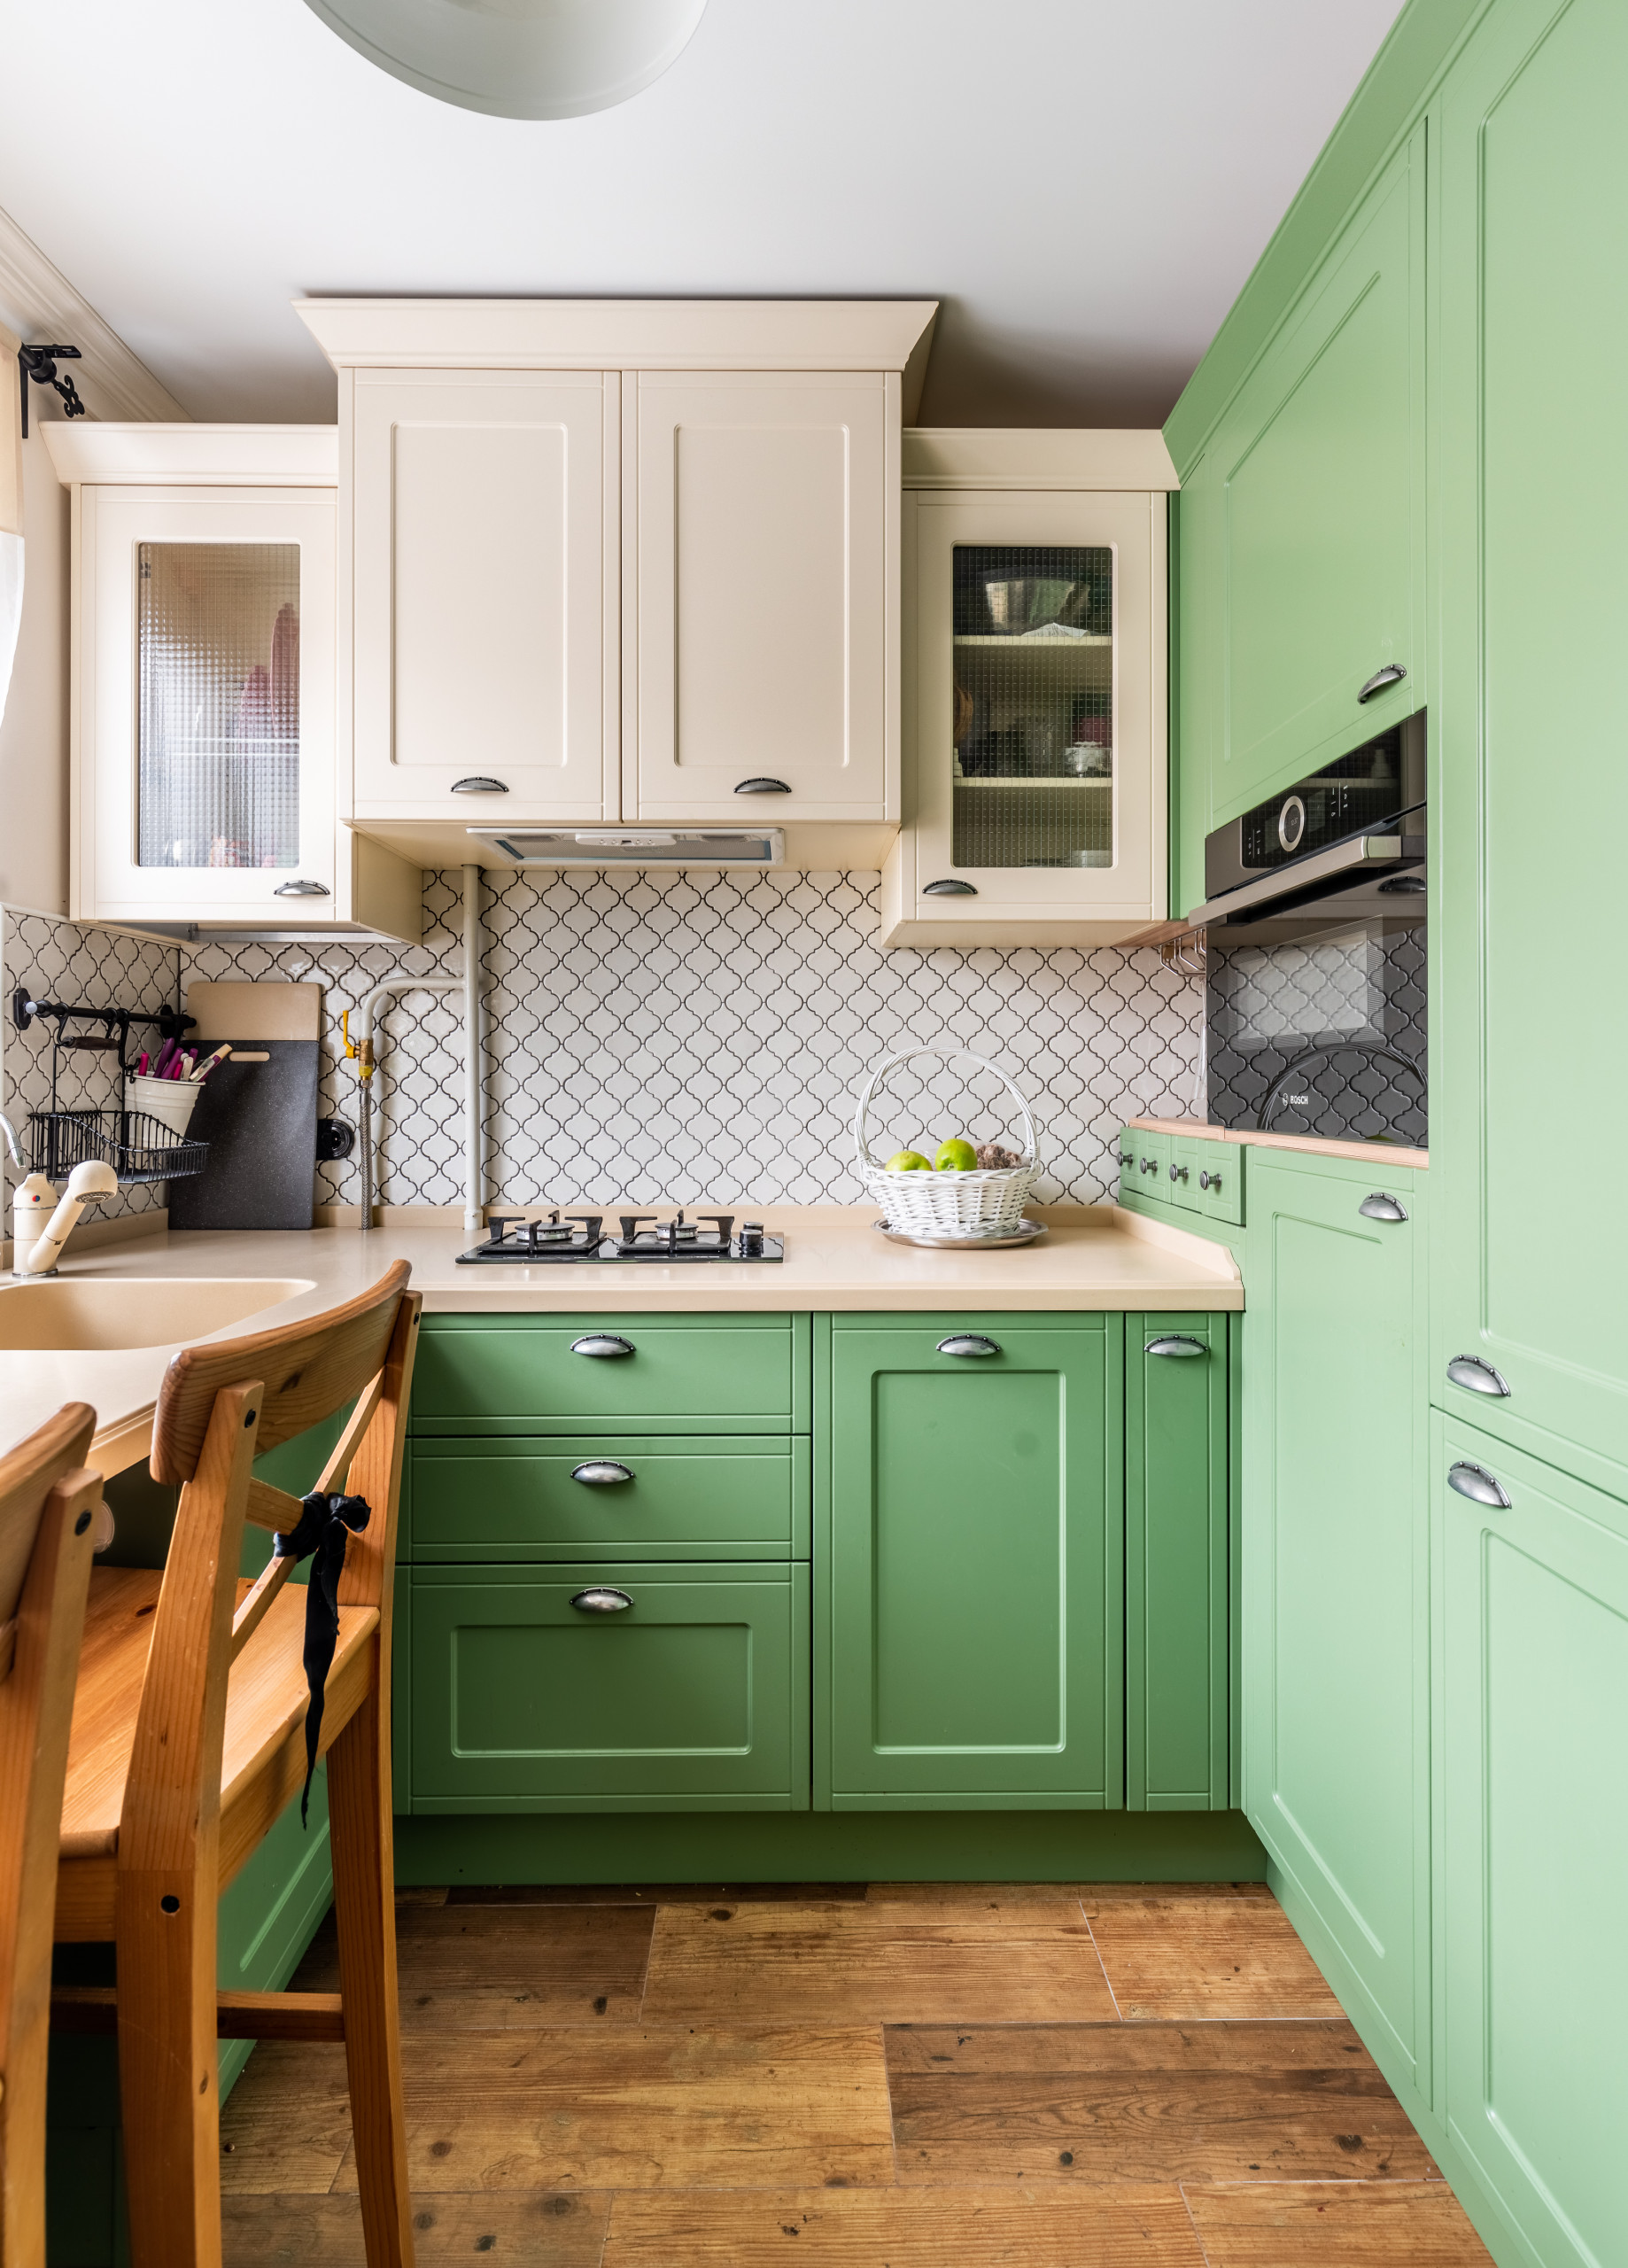 75 Beautiful Small Kitchen With Black Appliances Pictures Ideas October 2020 Houzz